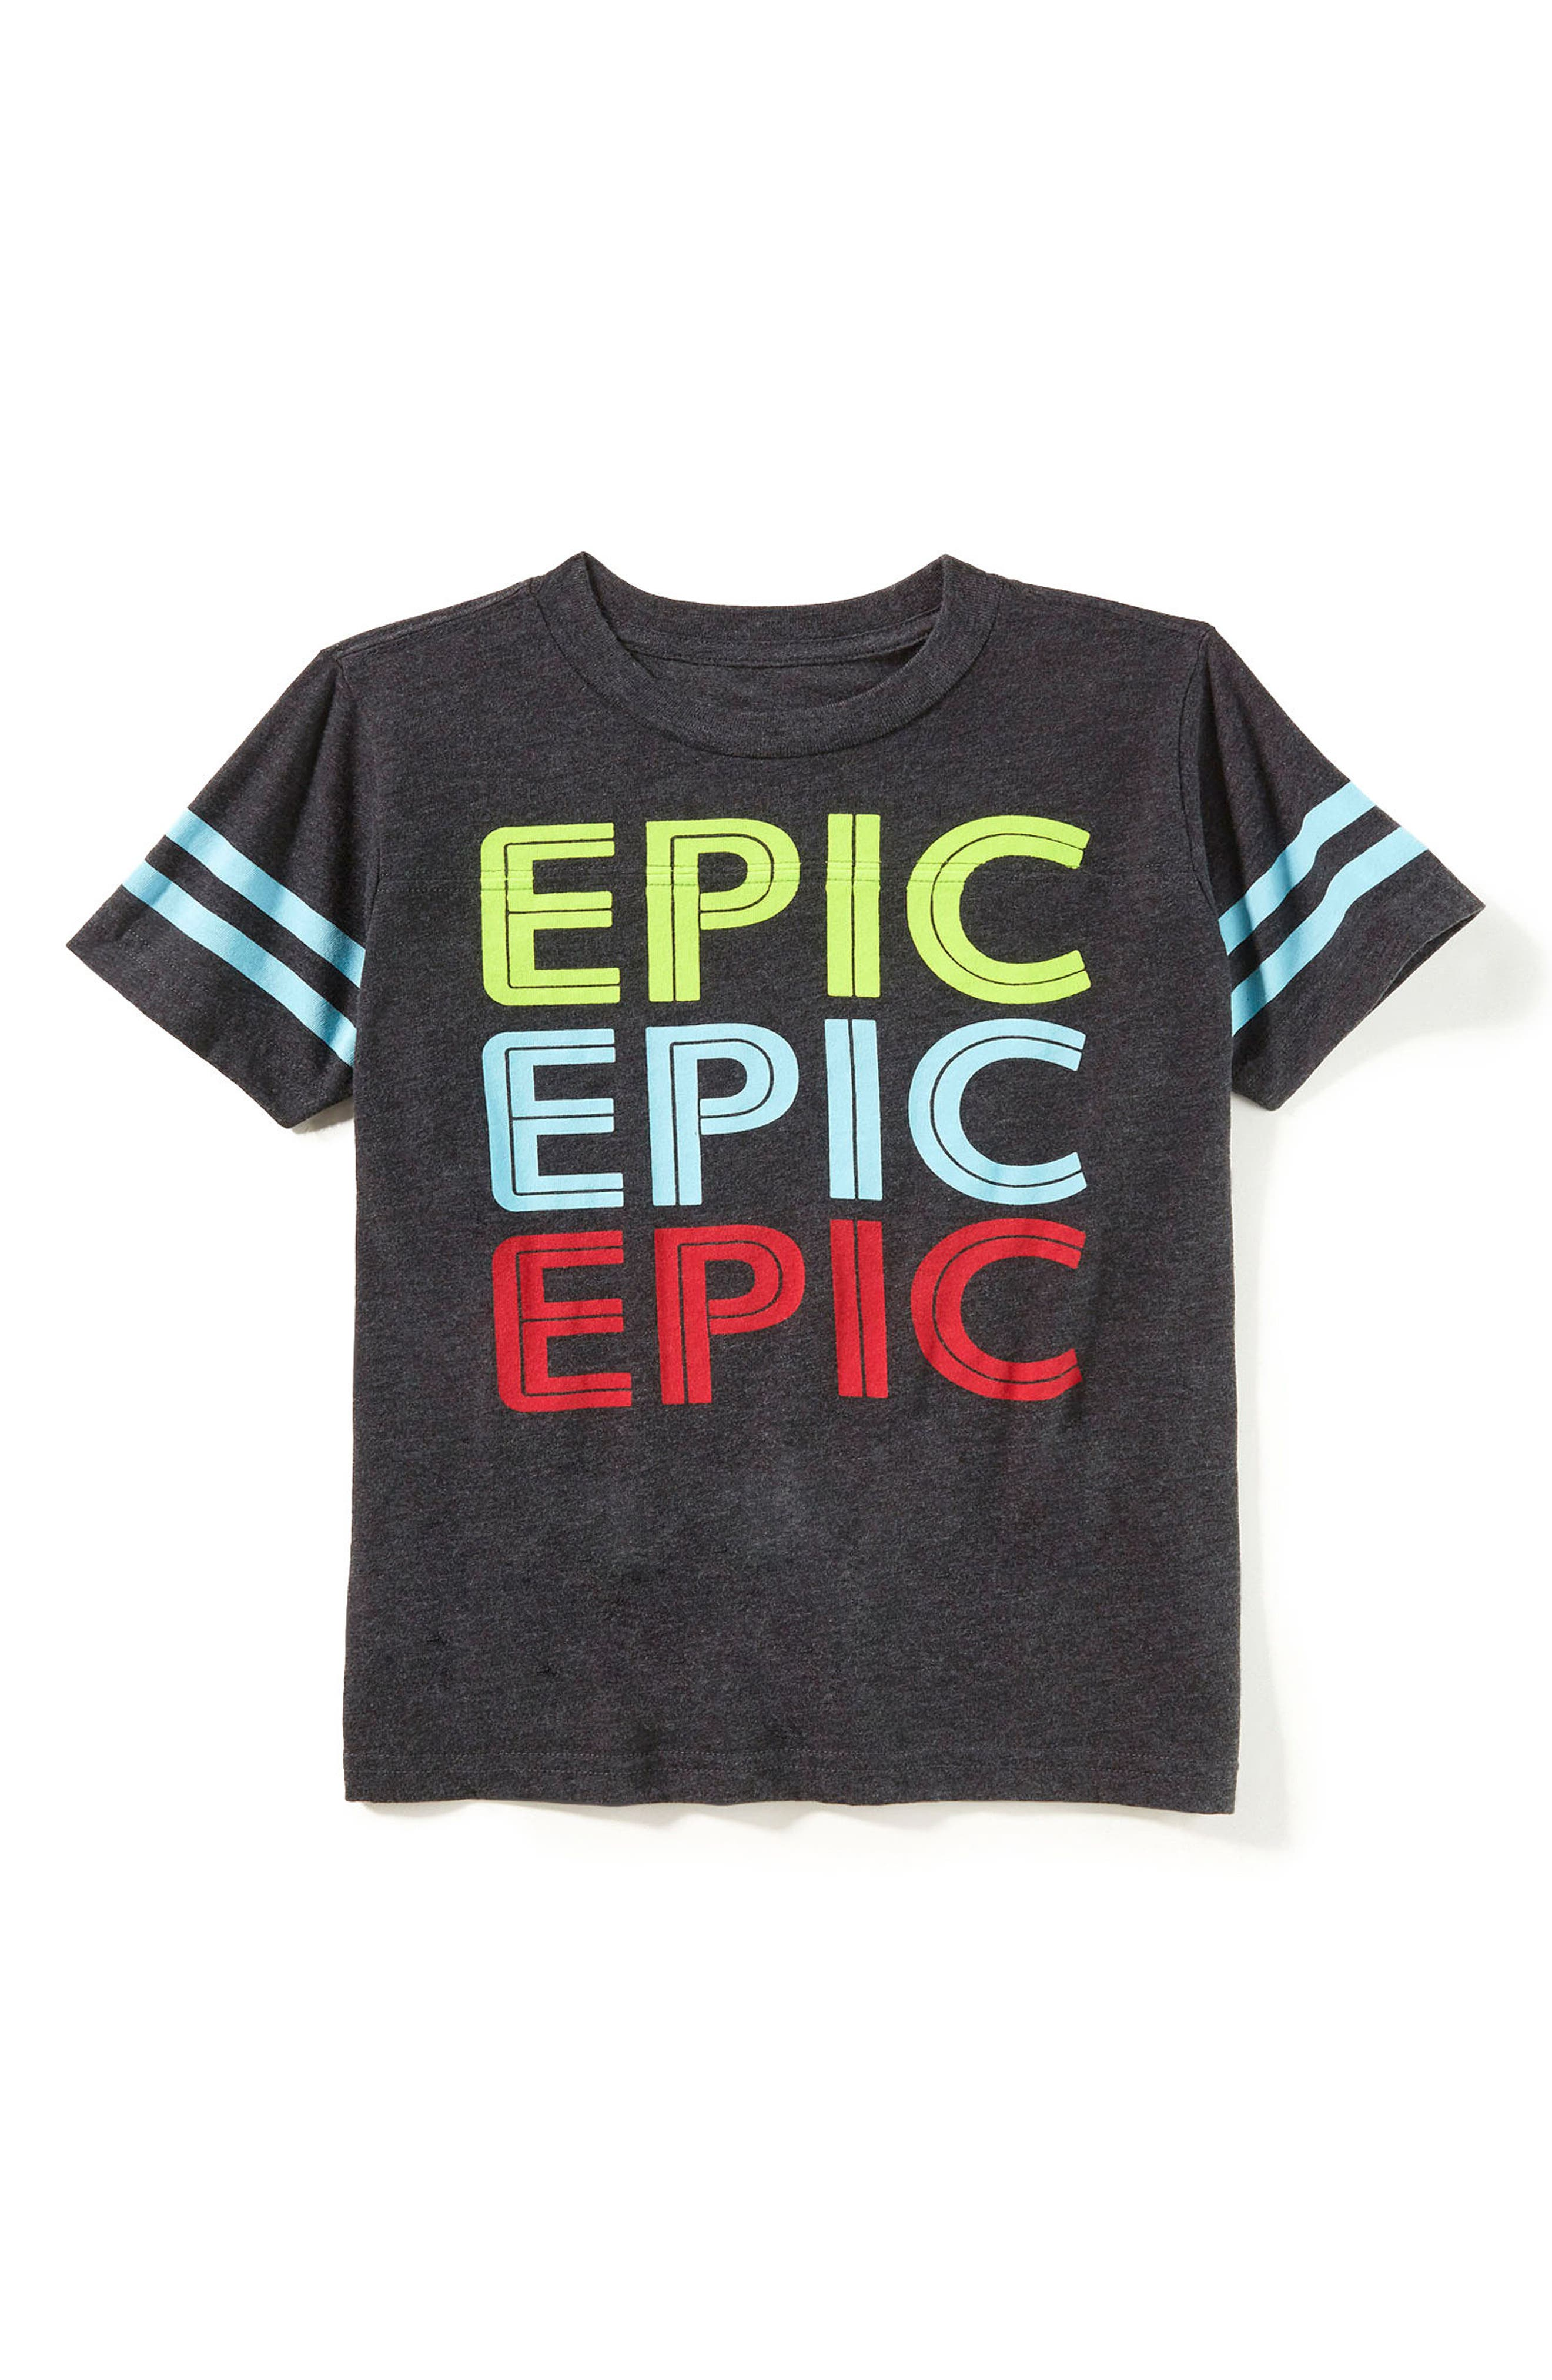 Alternate Image 1 Selected - Peek Epic Graphic T-Shirt (Toddler Boys, Little Boys & Big Boys)